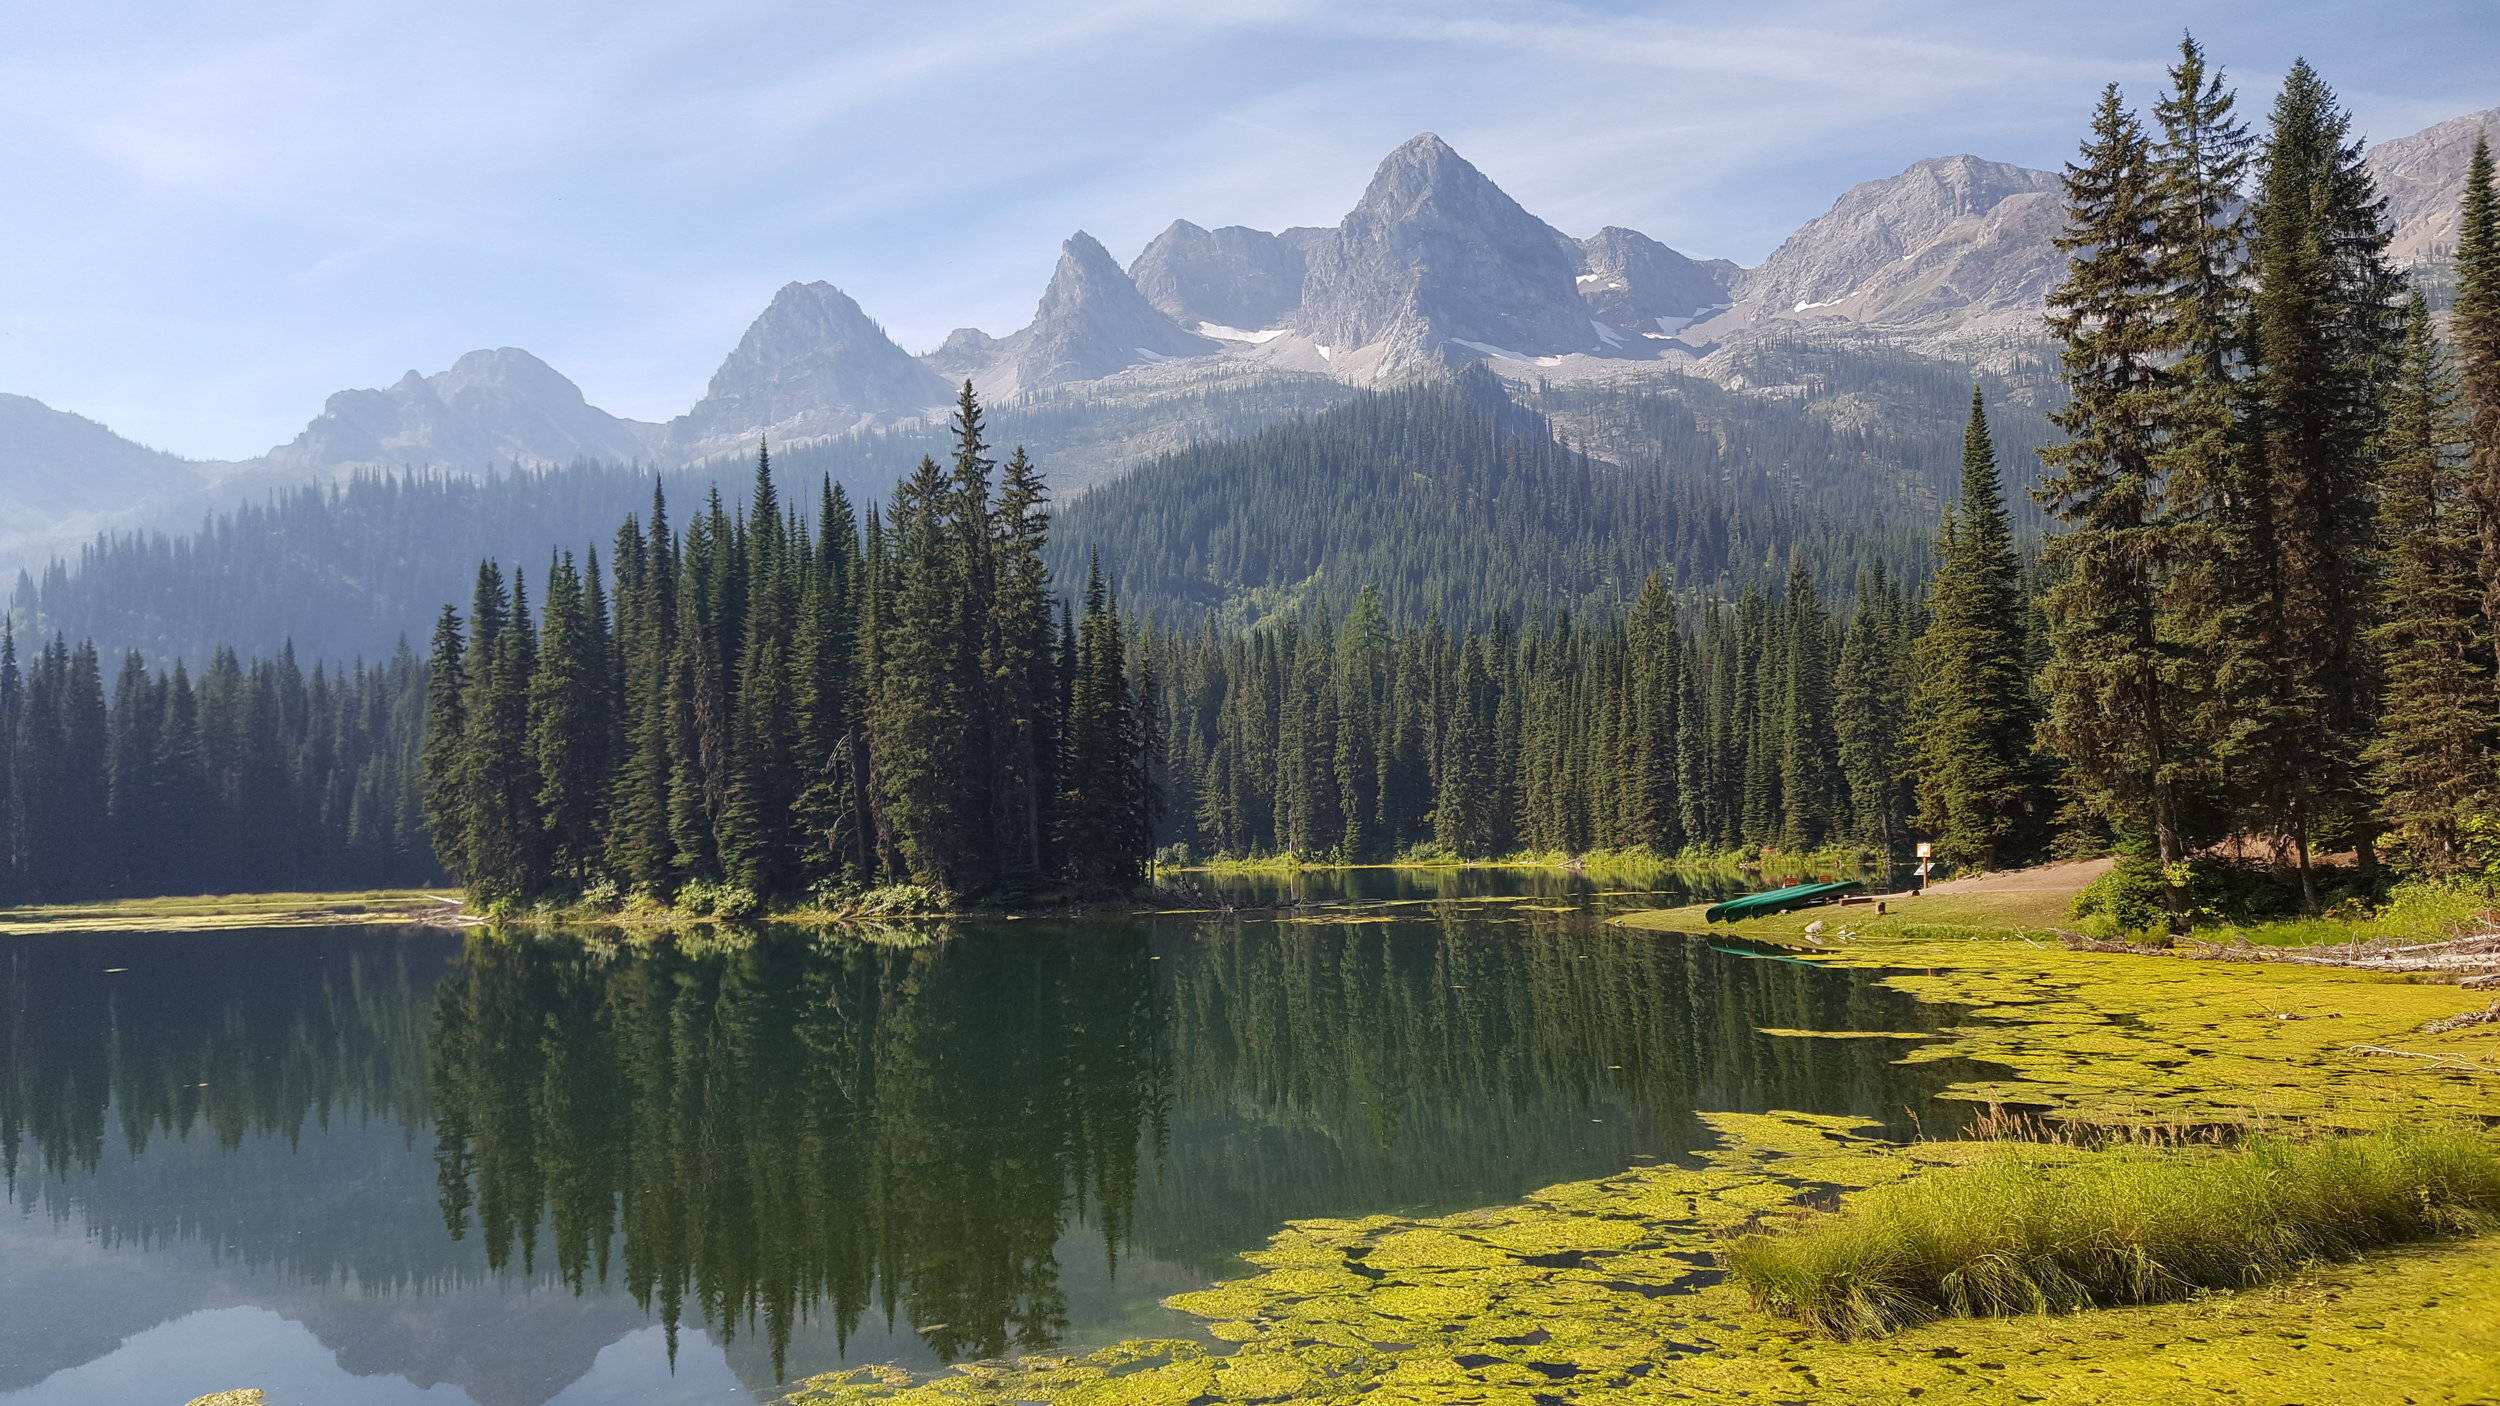 Just north of the U.S. border sits one of the most stunning places we've been - Island Lake, B.C.